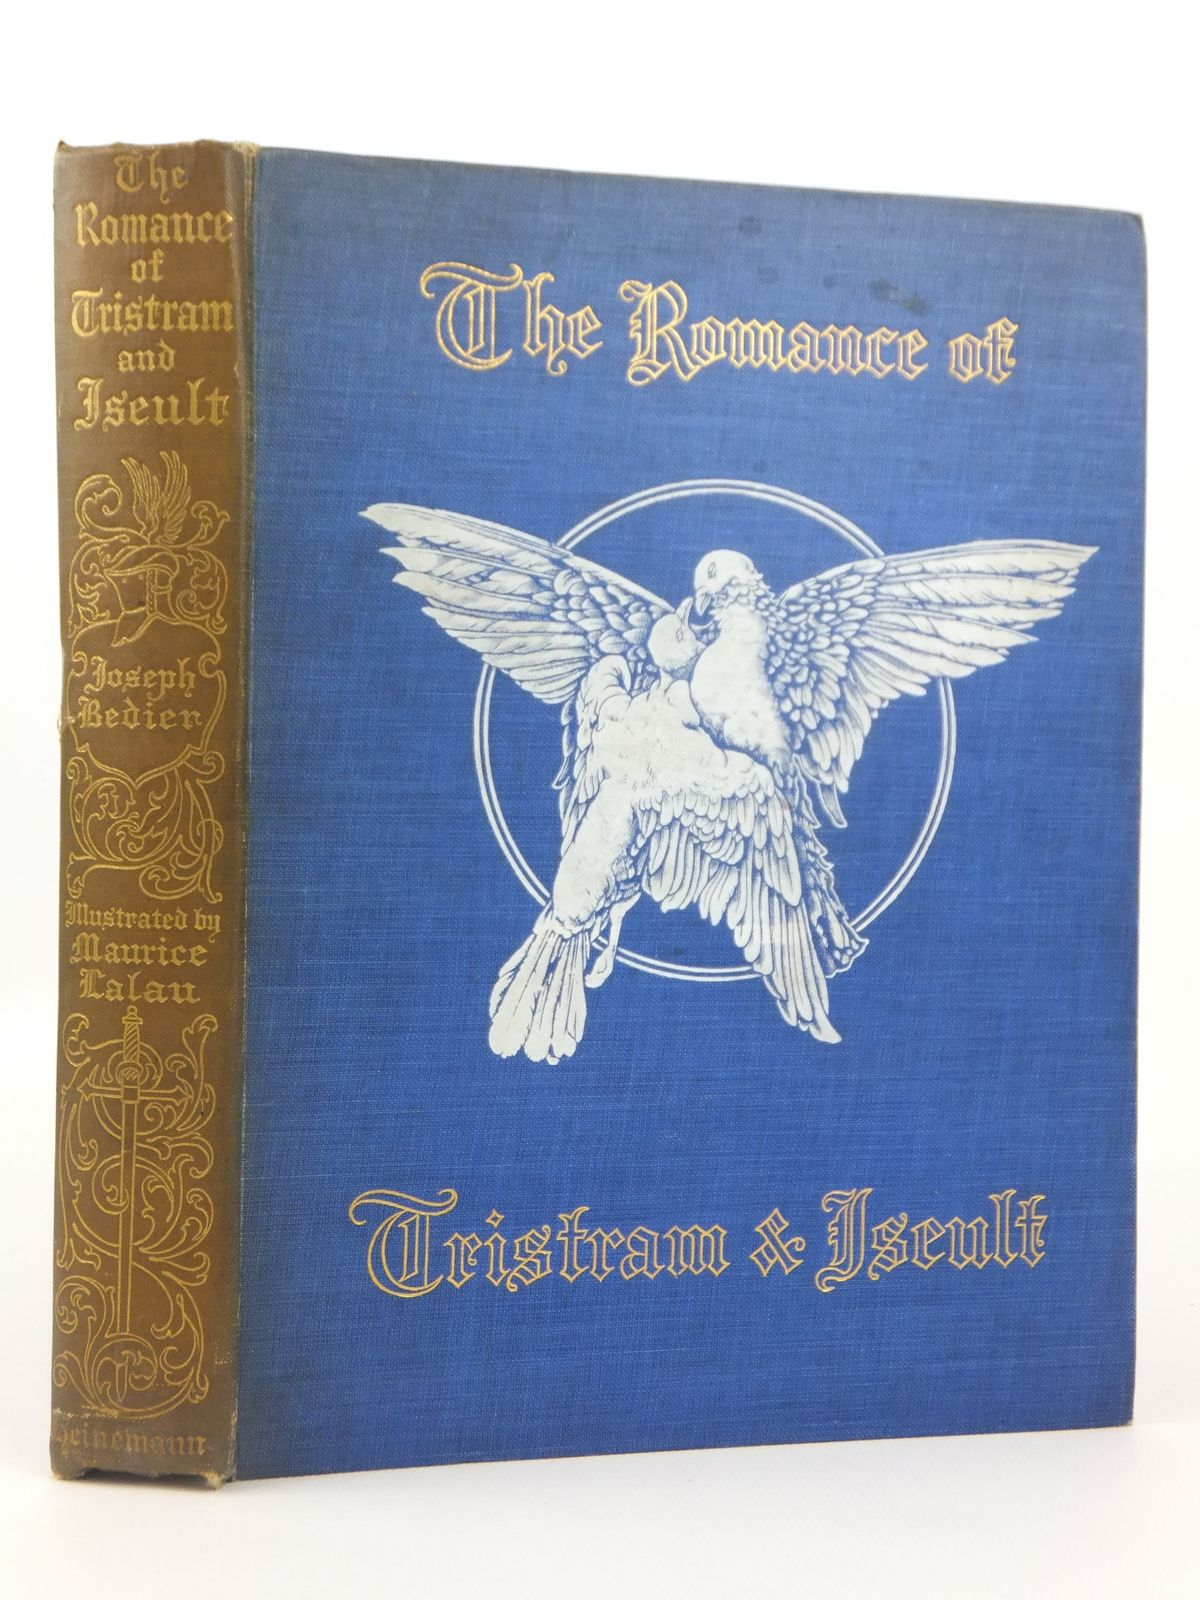 Photo of THE ROMANCE OF TRISTRAM AND ISEULT written by Bedier, Joseph illustrated by Lalau, Maurice published by William Heinemann (STOCK CODE: 1608773)  for sale by Stella & Rose's Books